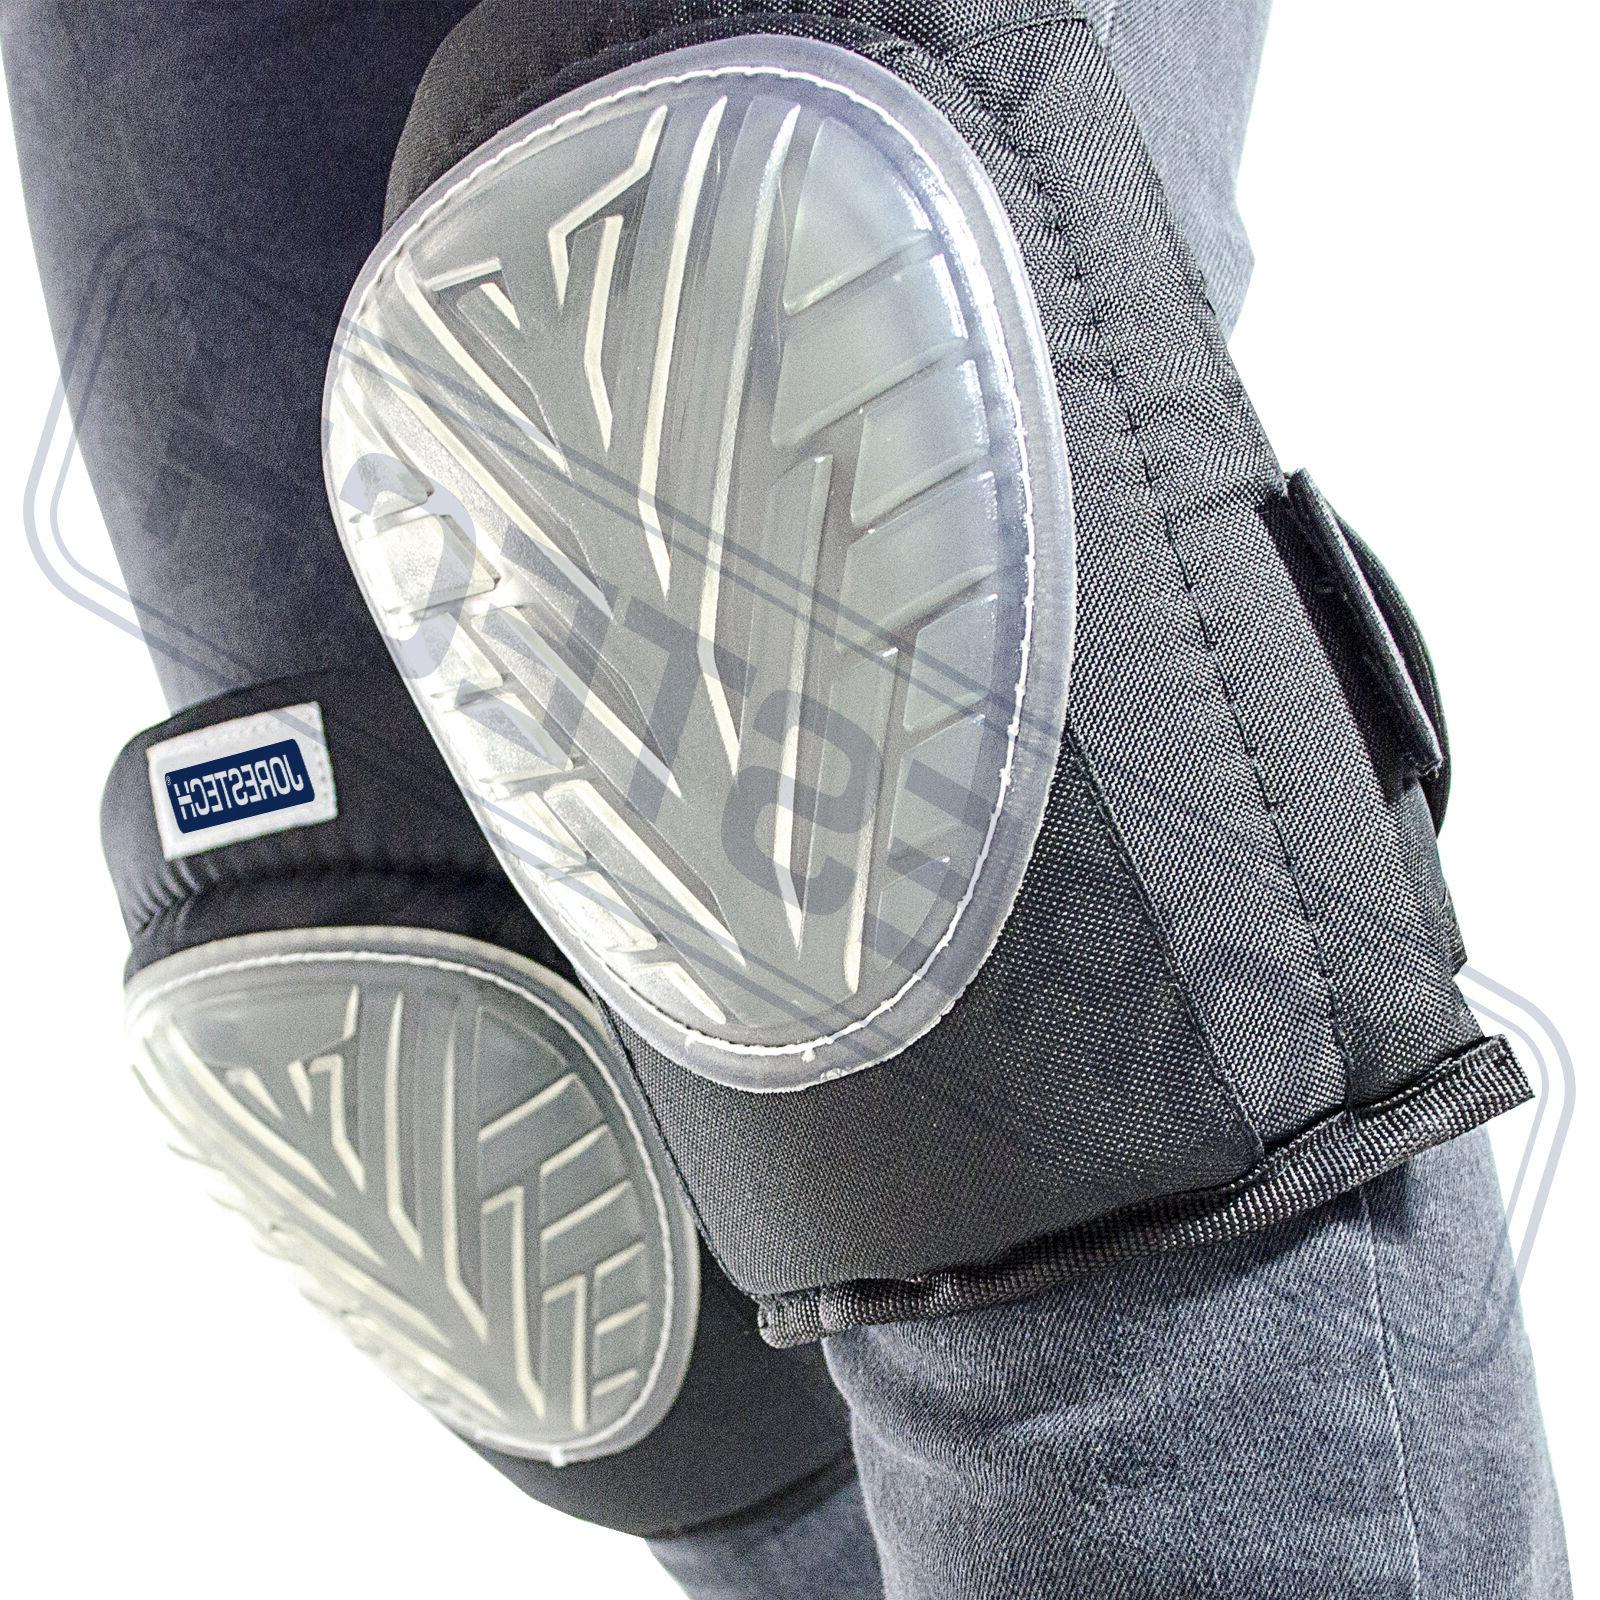 Construction Gel Knee Safety Comfort Pair Professional